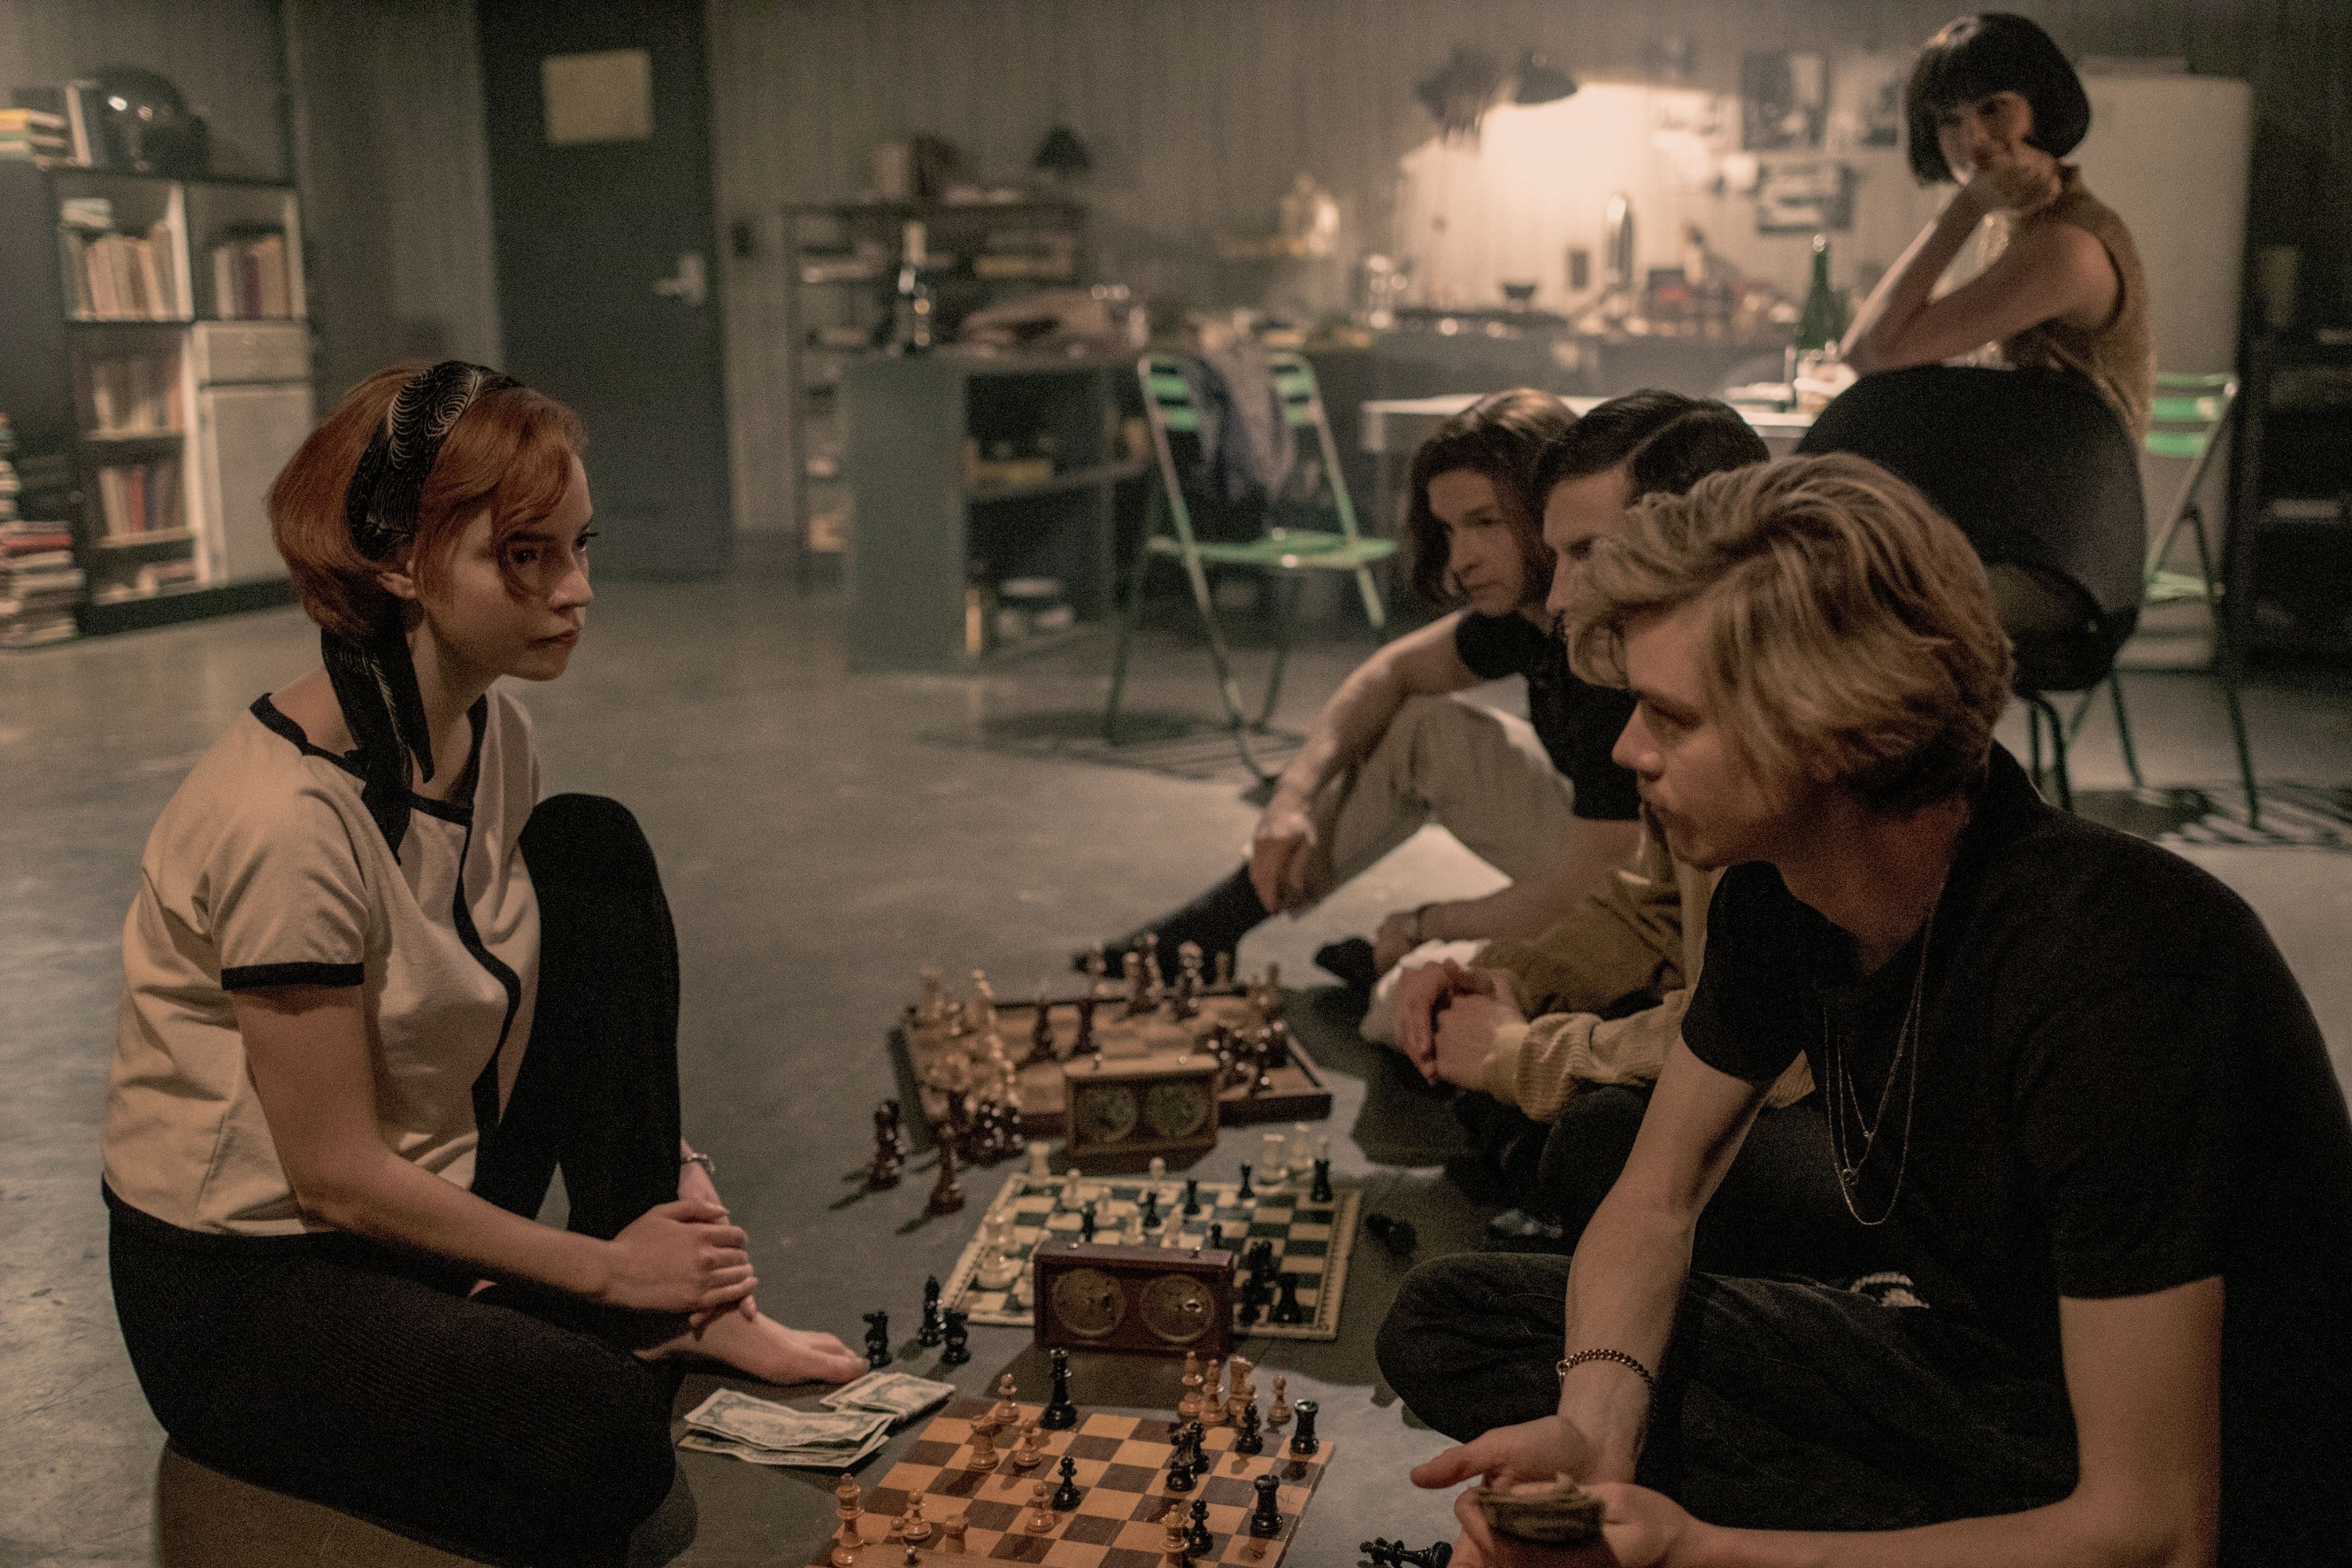 Anya sitting on the floor playing chess with several others